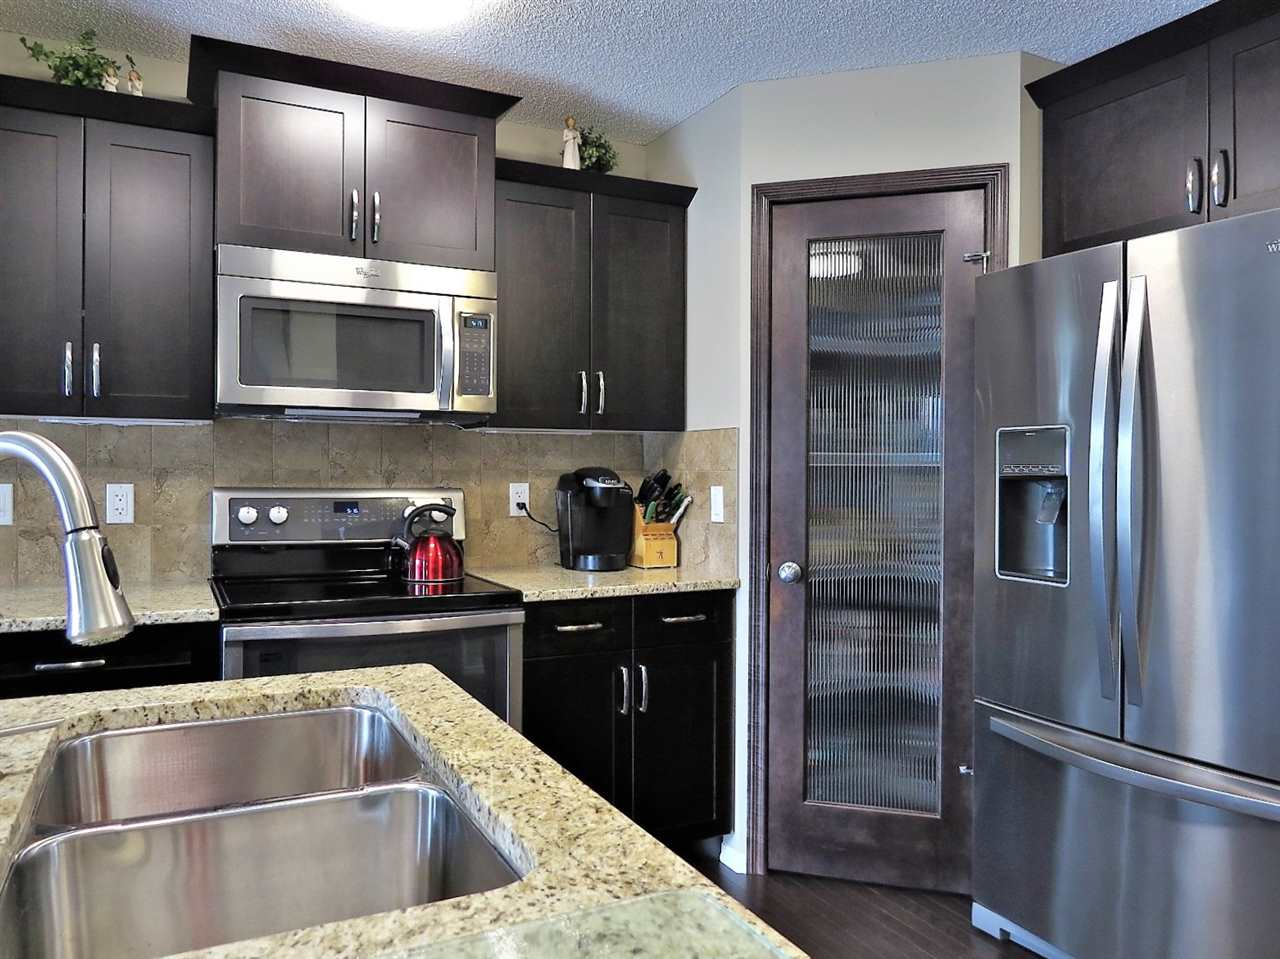 Granite, upgraded cabinets, upgraded lighting with under cabinet lighting, S.S. appliances and lots of counter space make this kitchen a pleasure to prepare meals in!